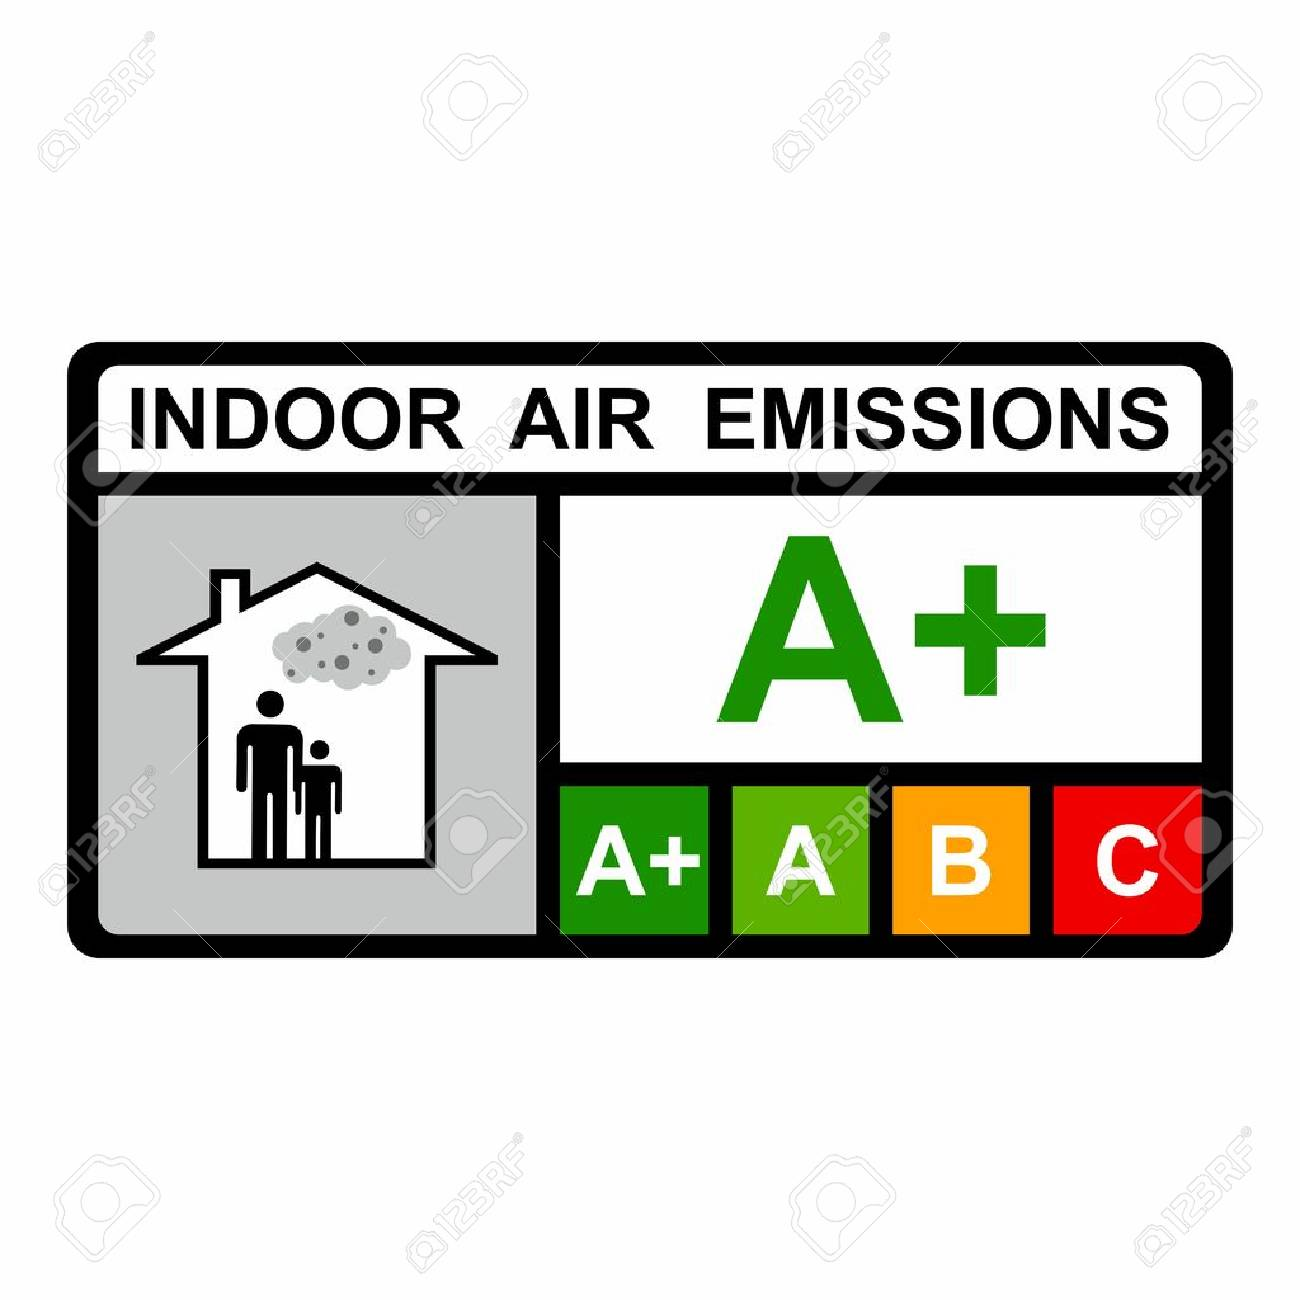 Indoor Air Emissions Vector Design Isolated On White Background Royalty  Free Cliparts, Vectors, And Stock Illustration. Image 76608811.